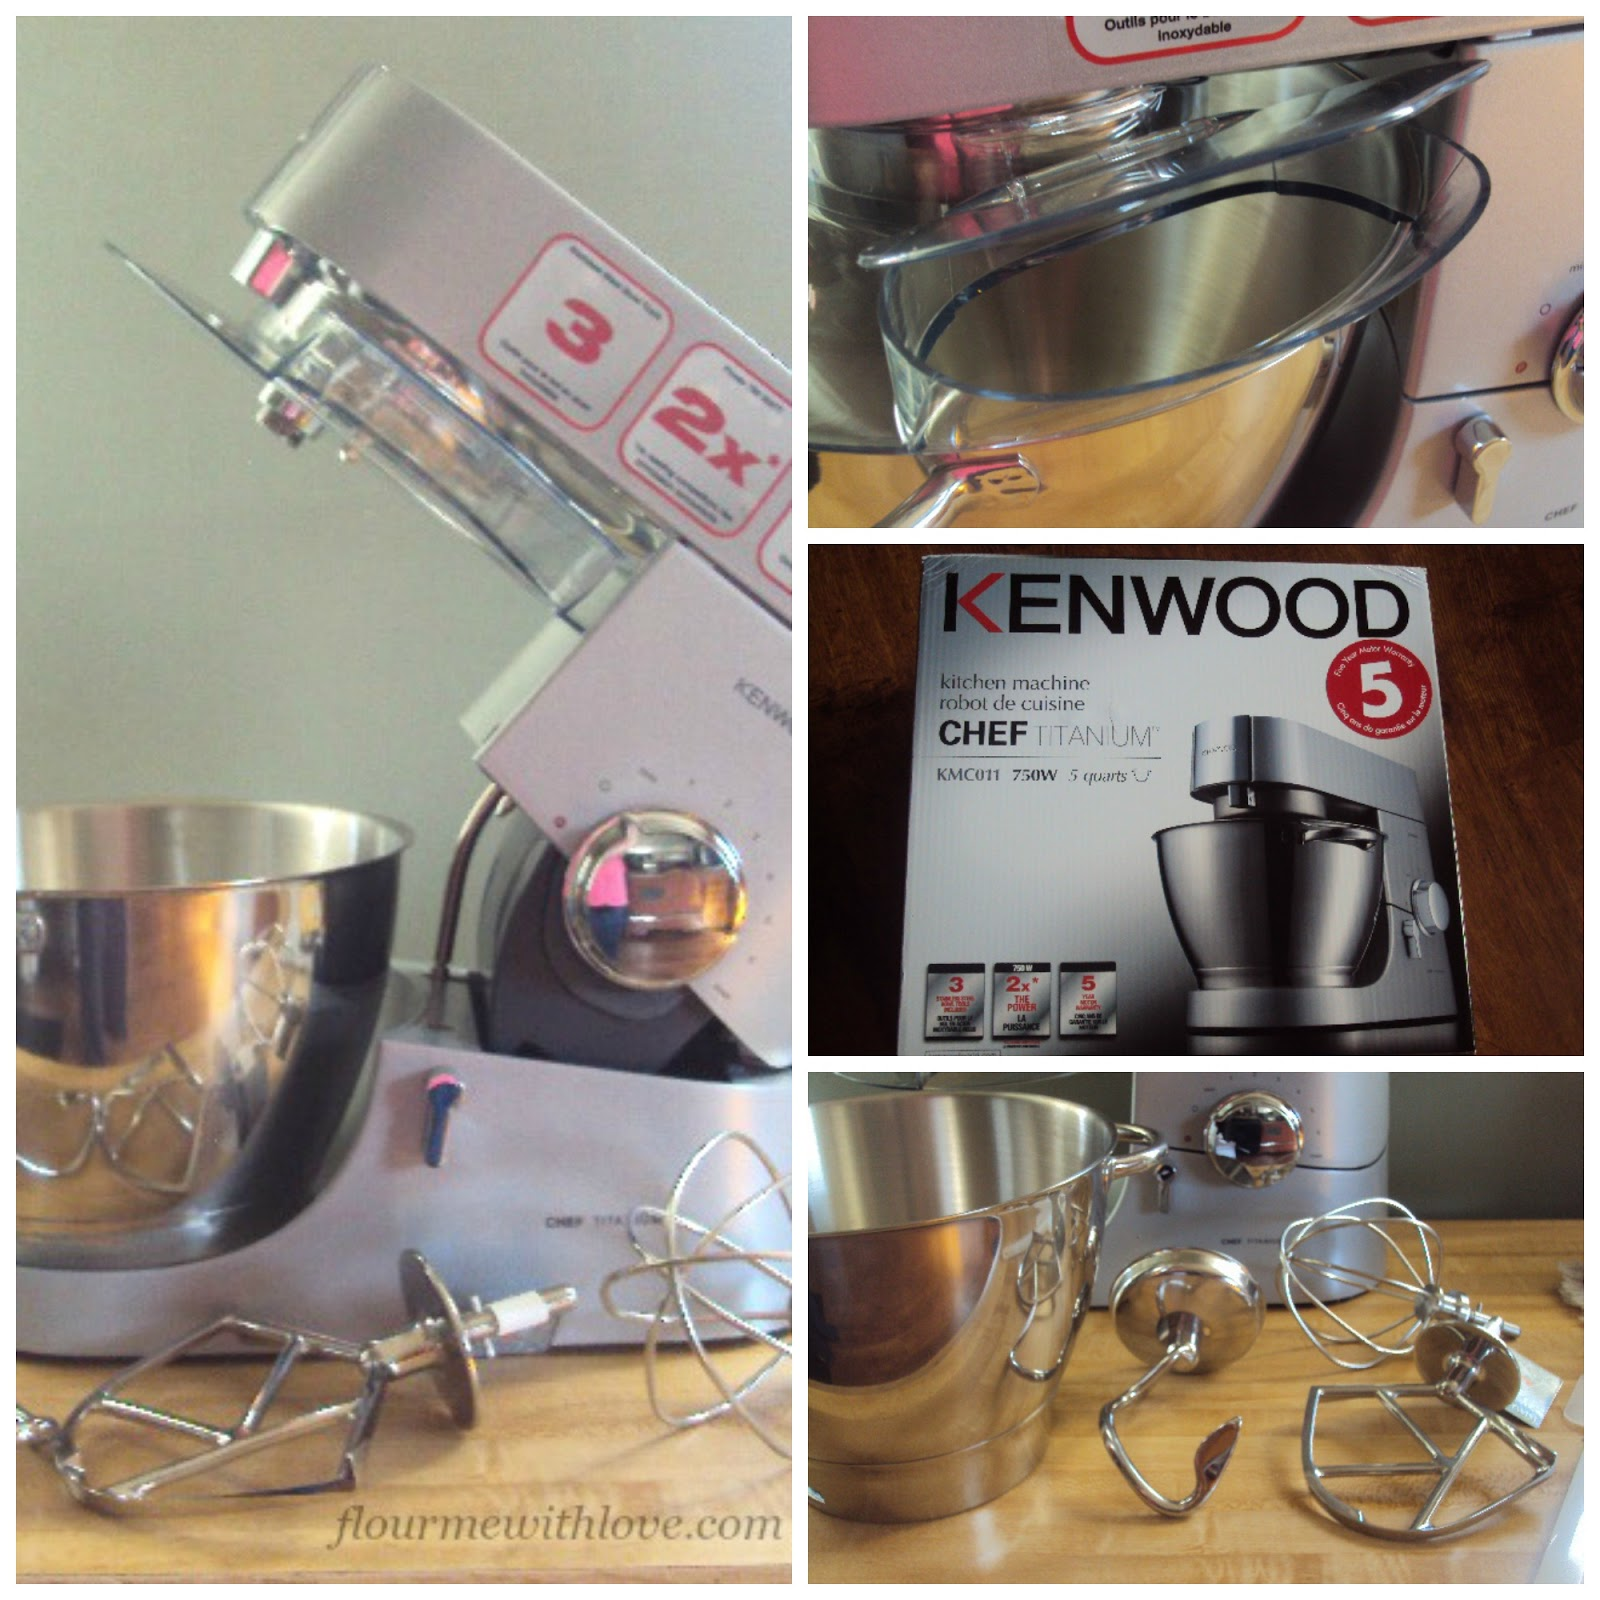 Can I Making Cakes With Kenwood Chef